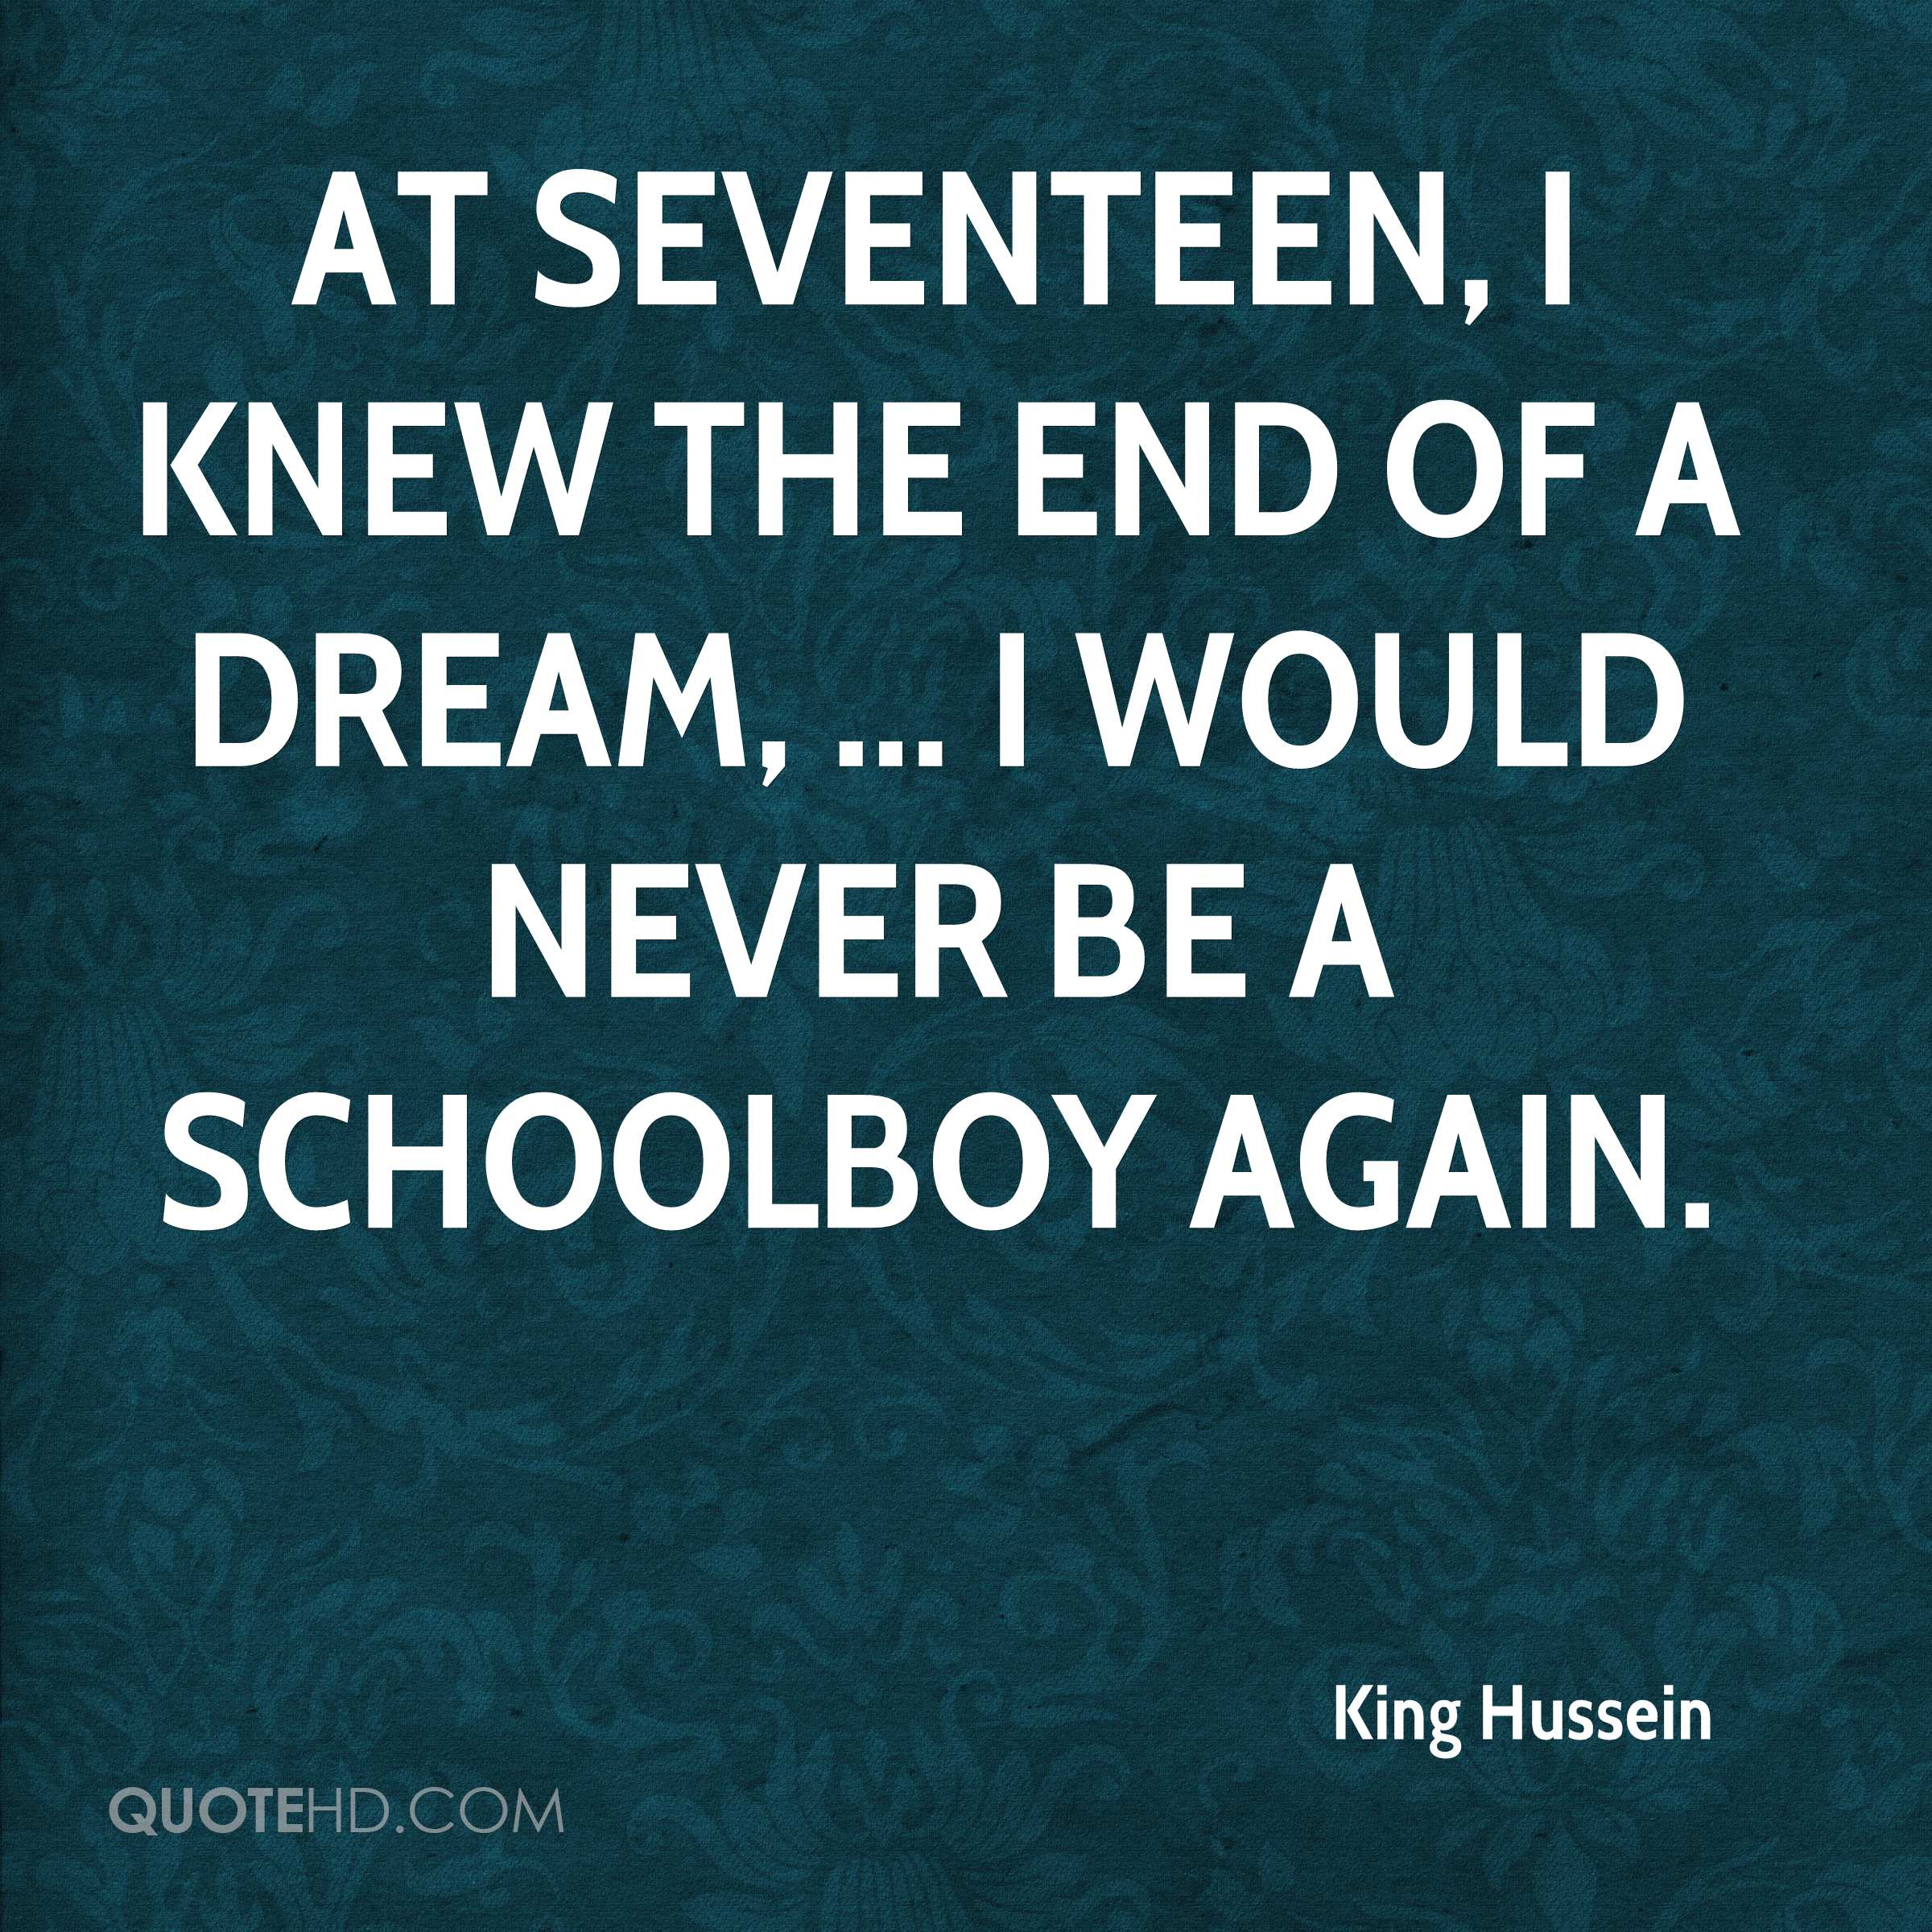 At seventeen, I knew the end of a dream, ... I would never be a schoolboy again.